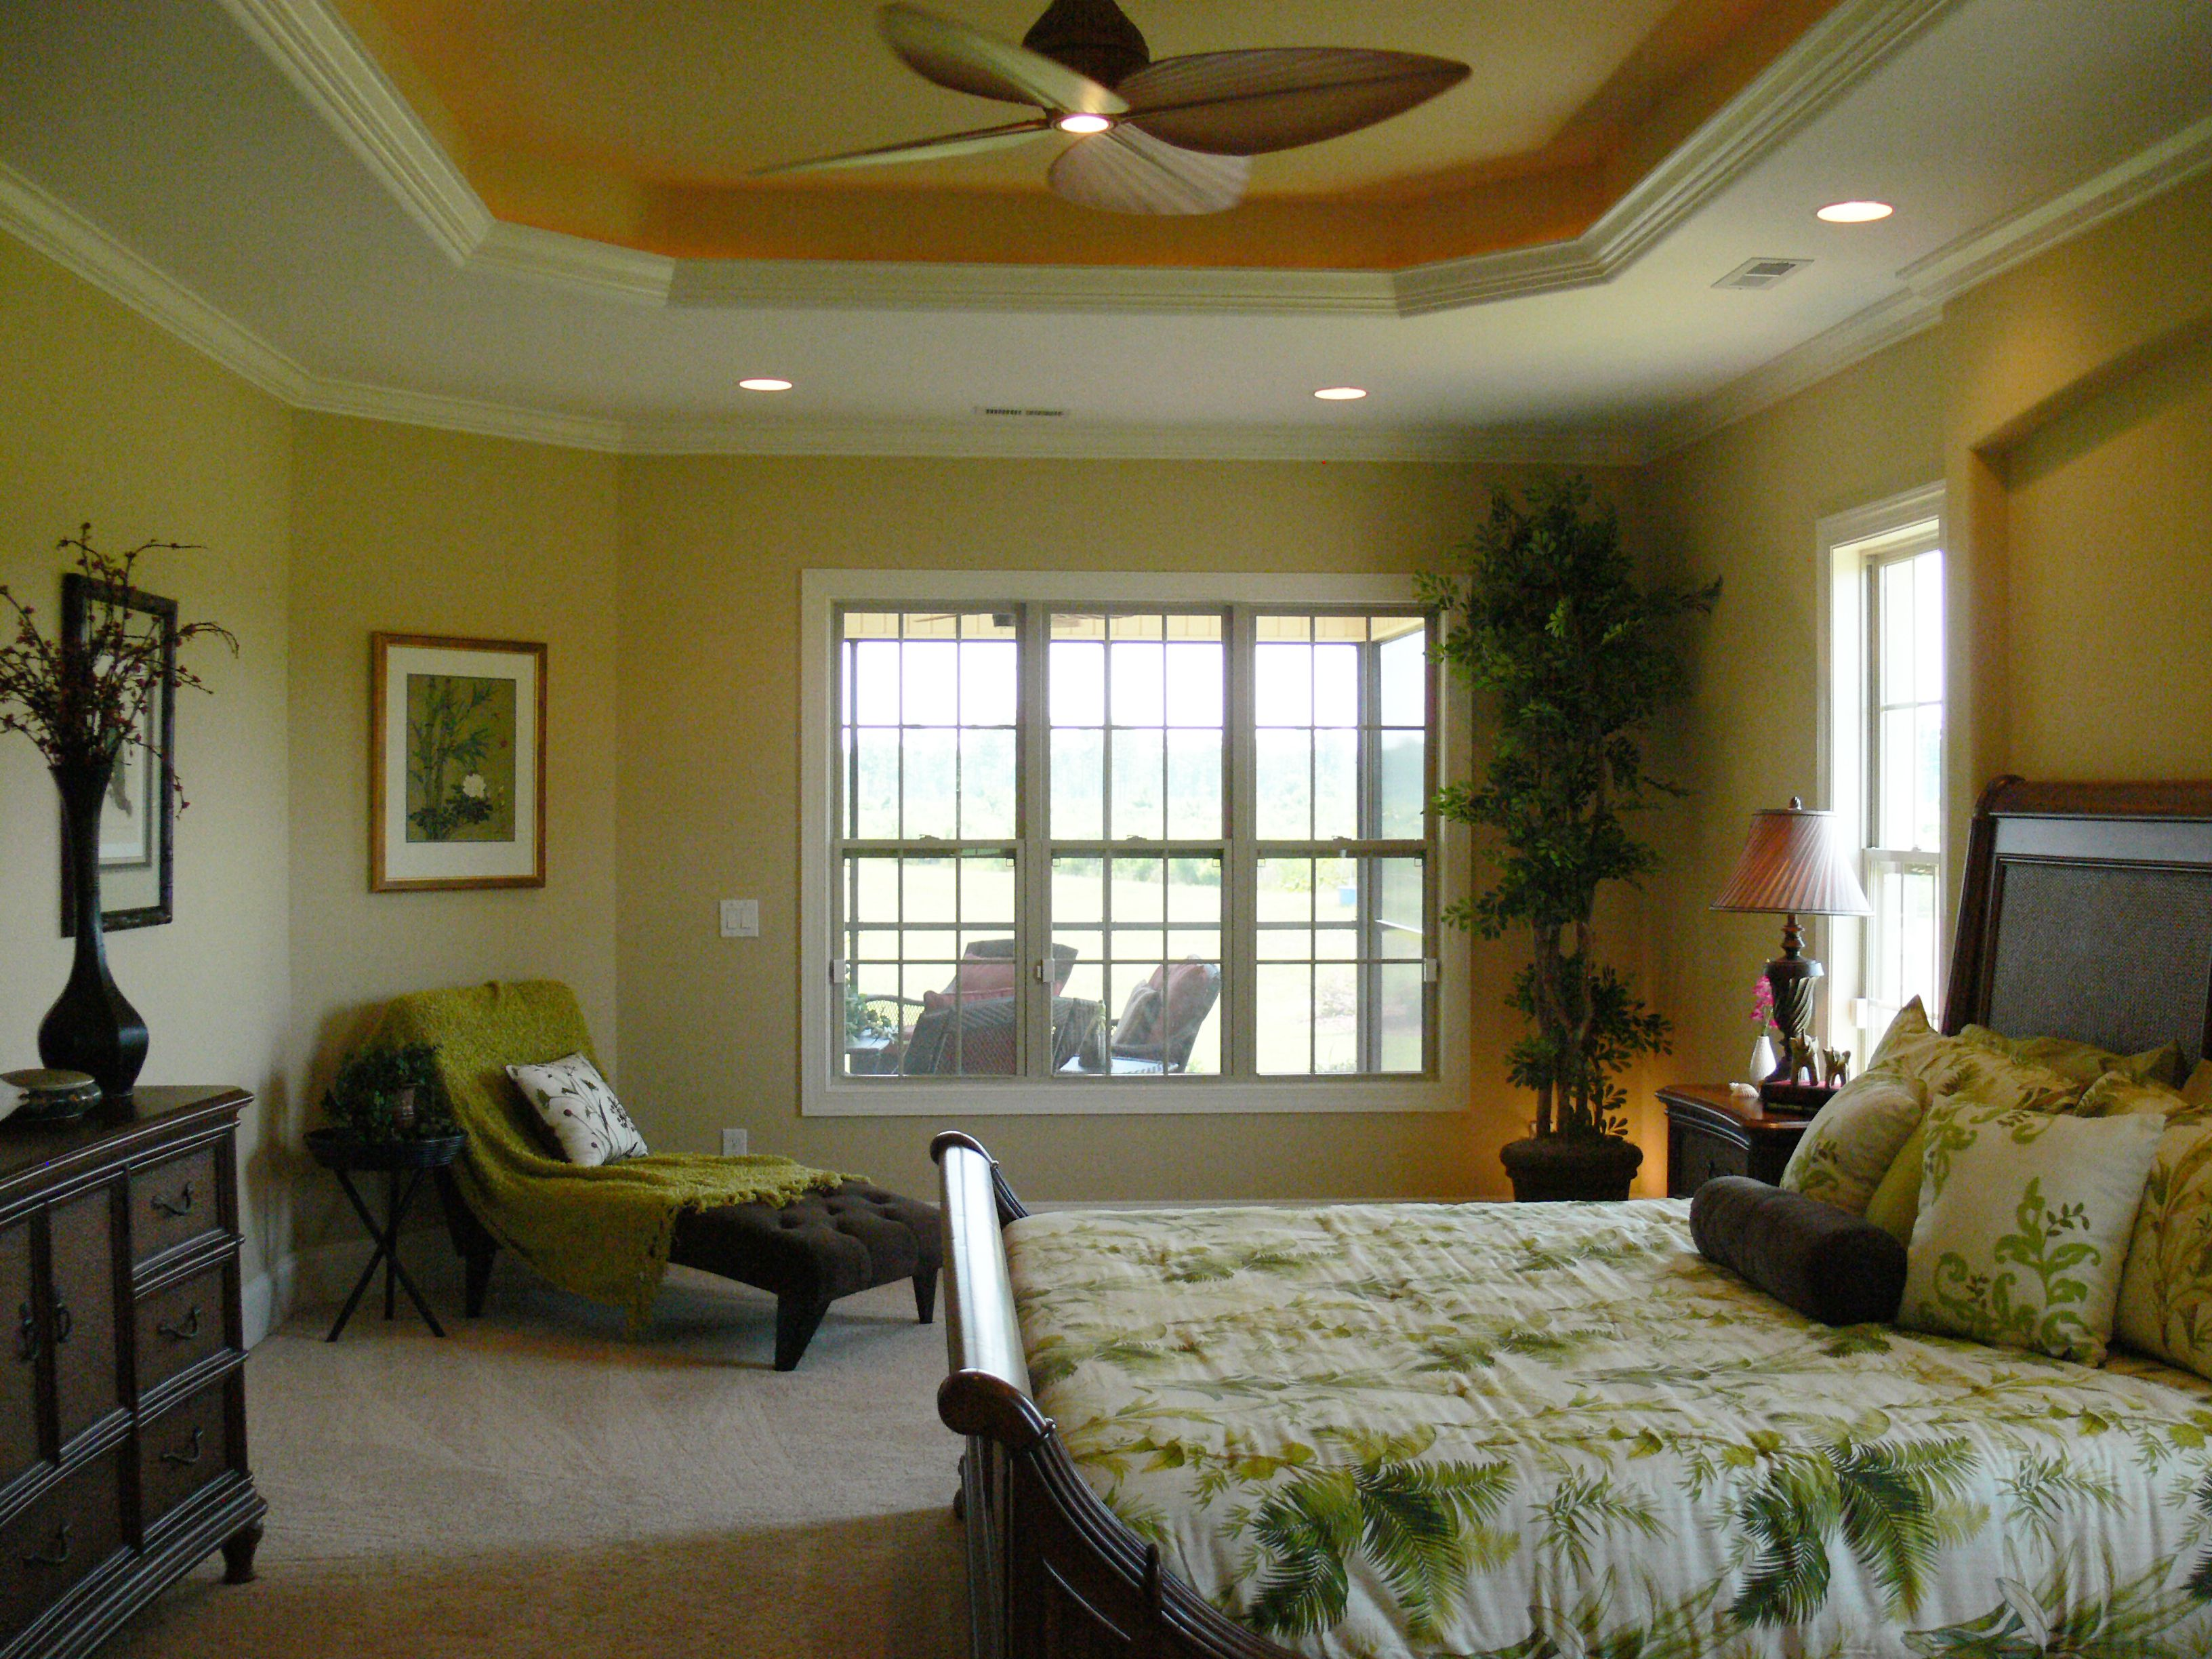 Decorative fan, recessed lighting, tray ceiling, lots of space in this Belize model Logan Home master bedroom.